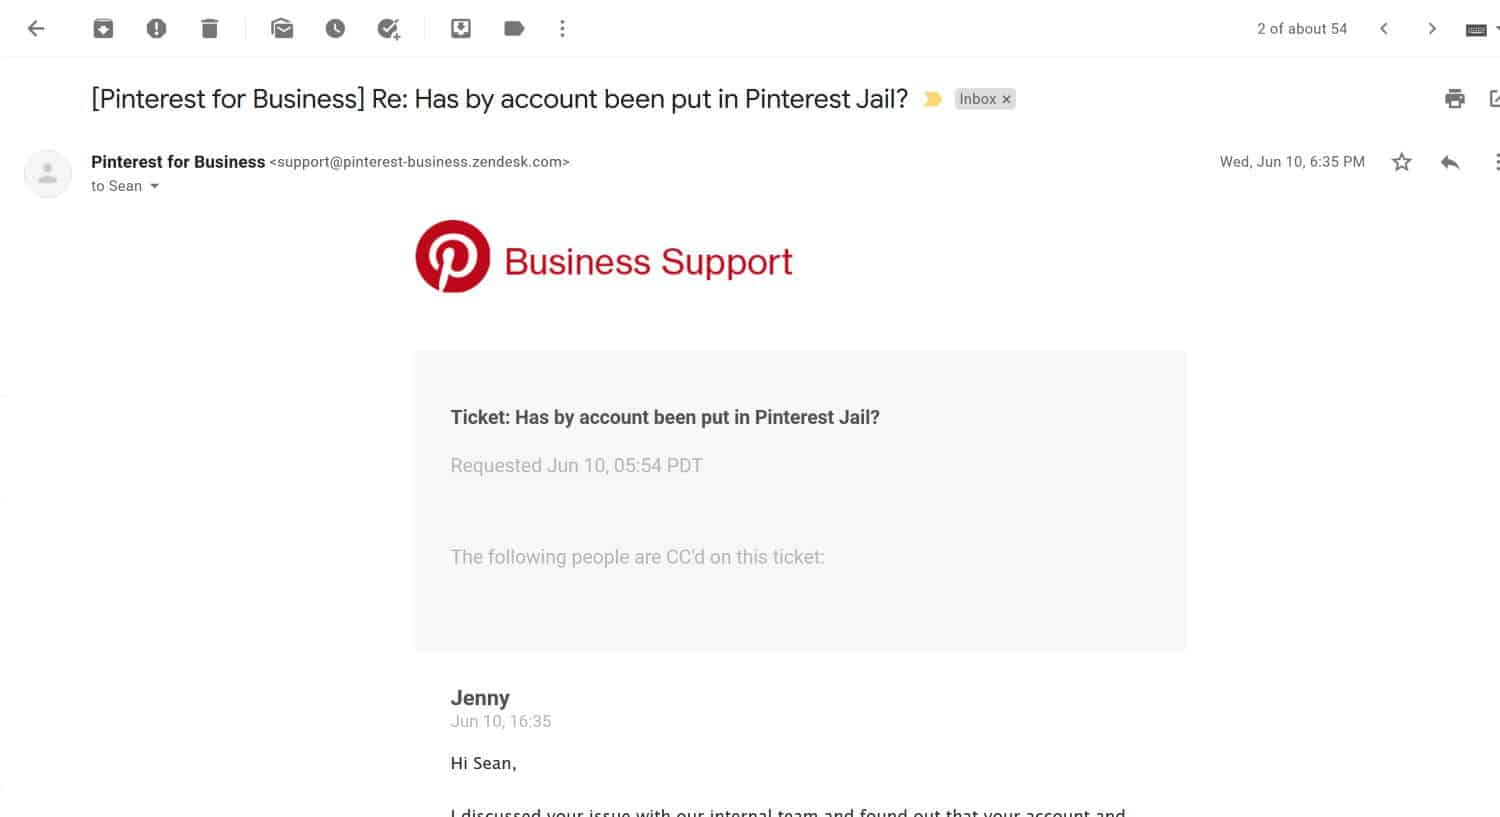 Pinterest customer support does respond to help tickets